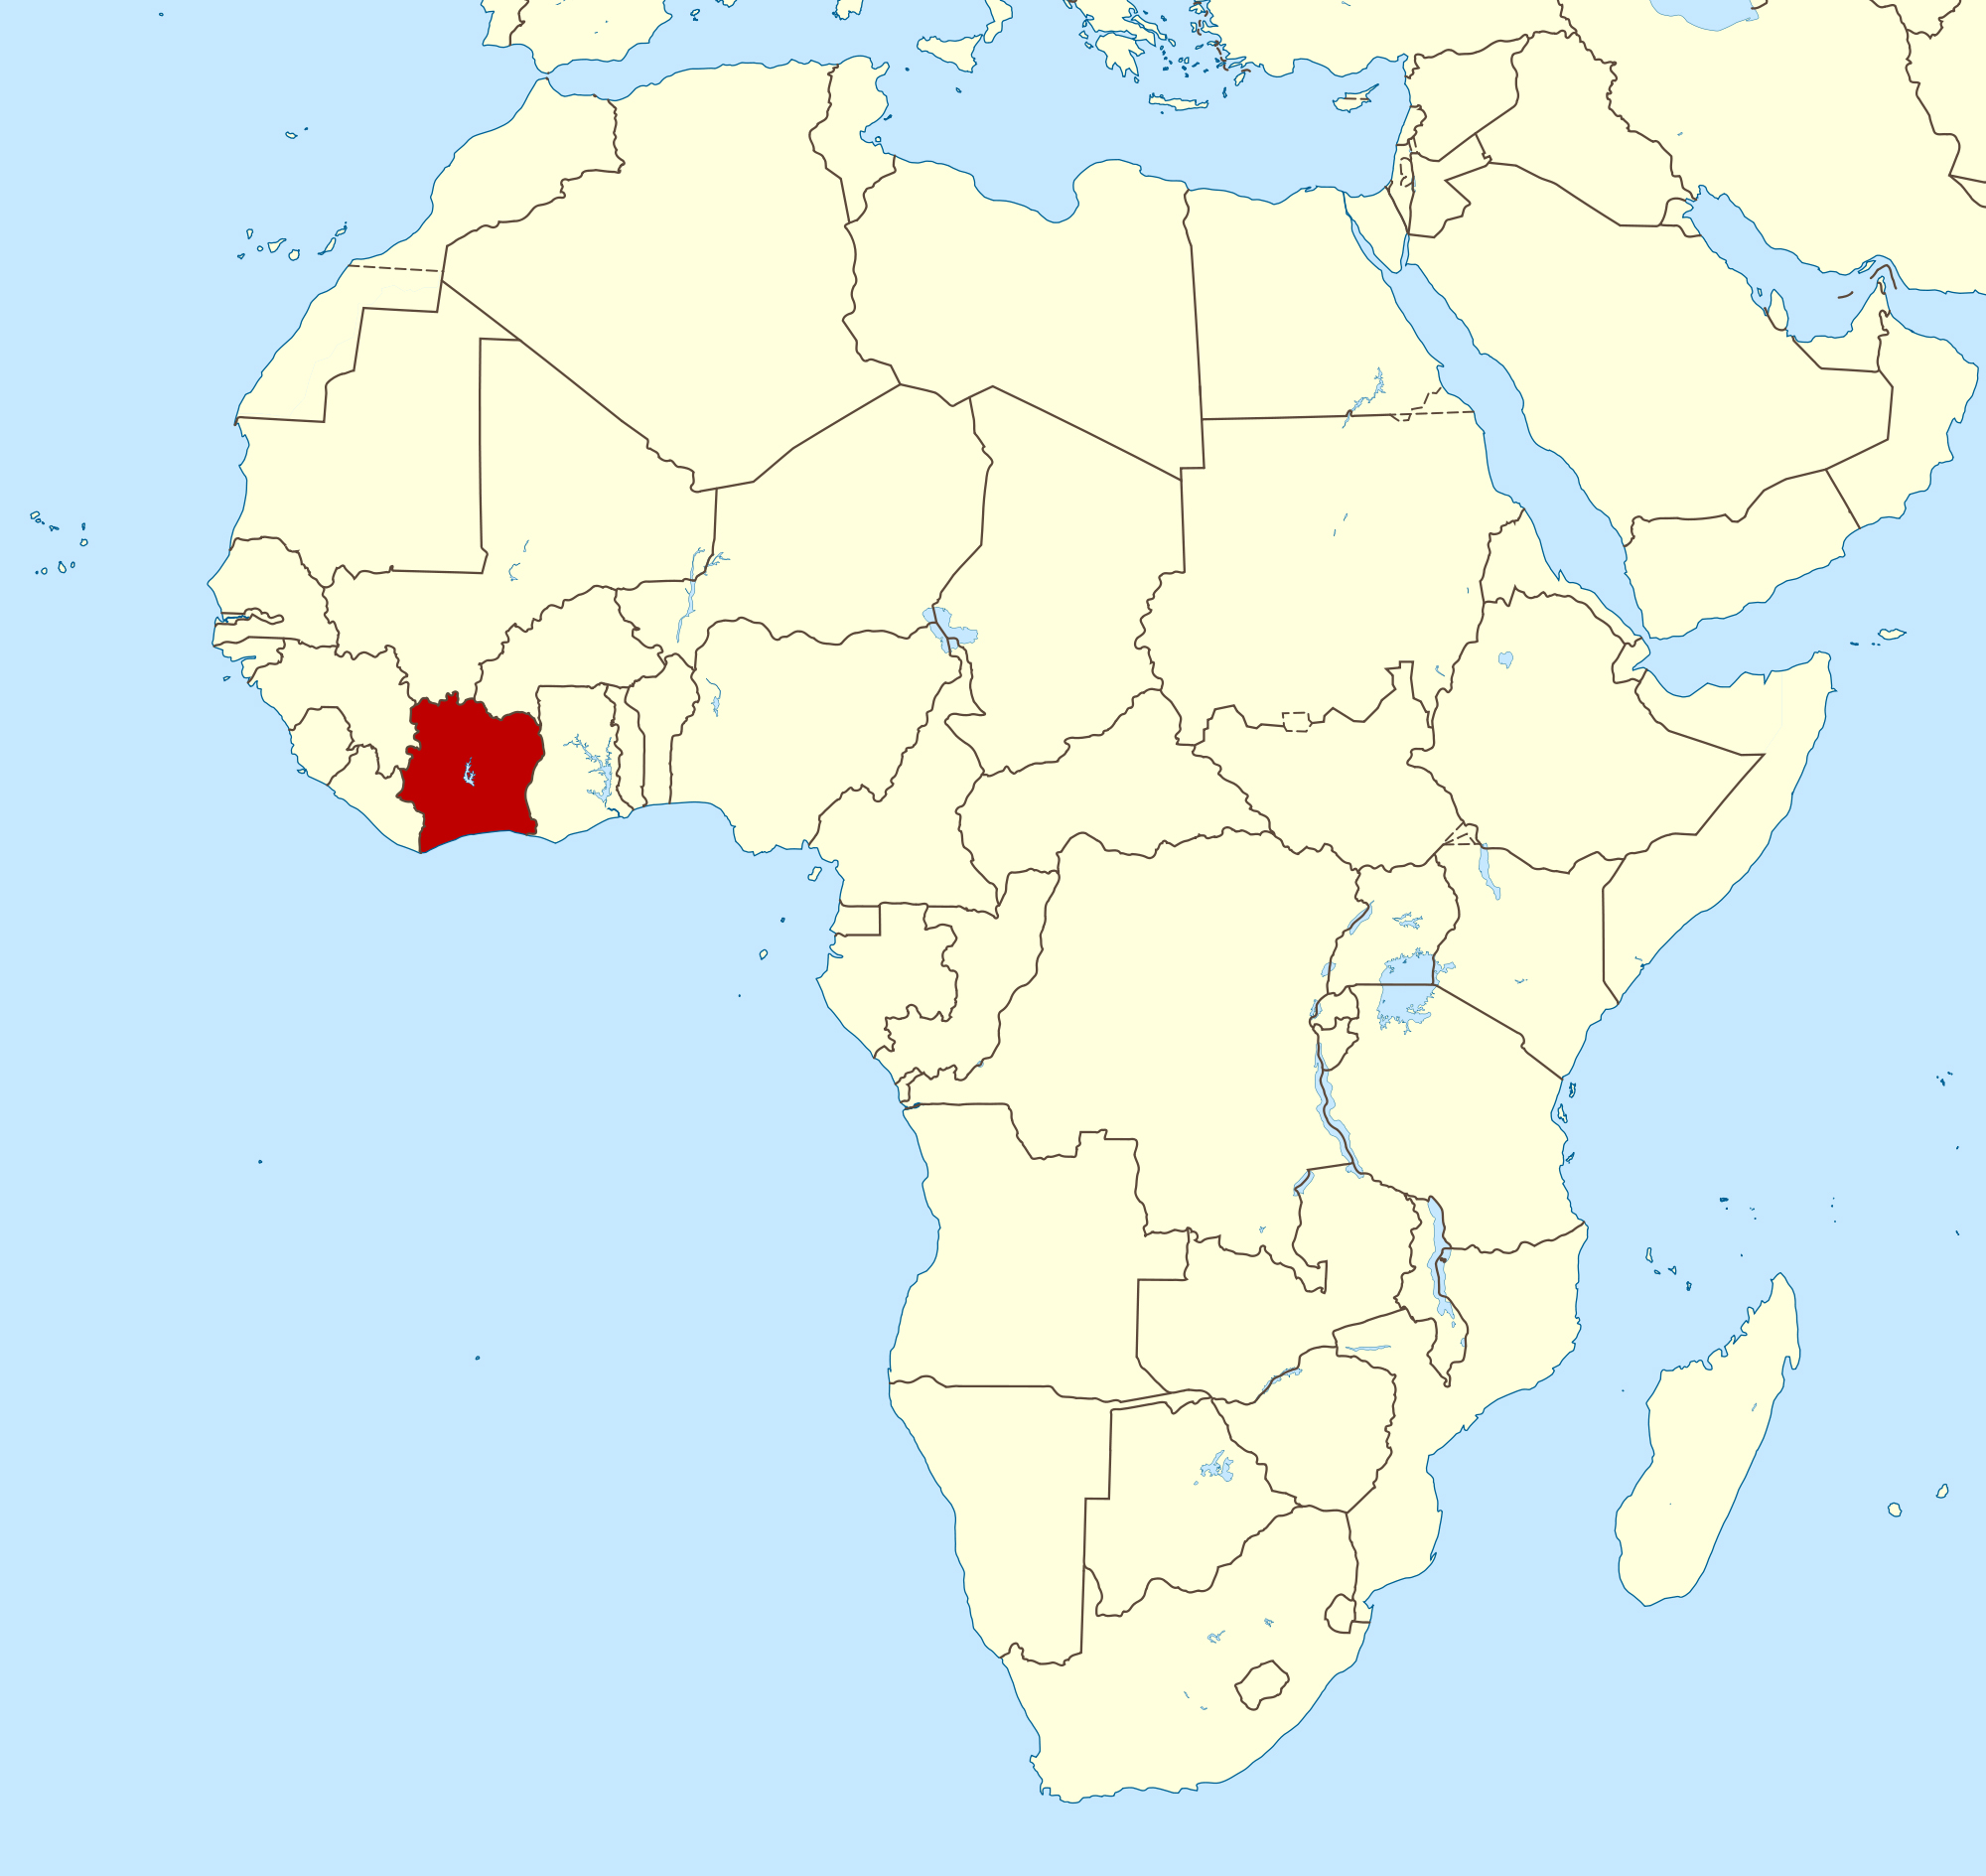 Large Location Map Of Cote DIvoire In Africa Cote DIvoire - Cote d'ivoire map